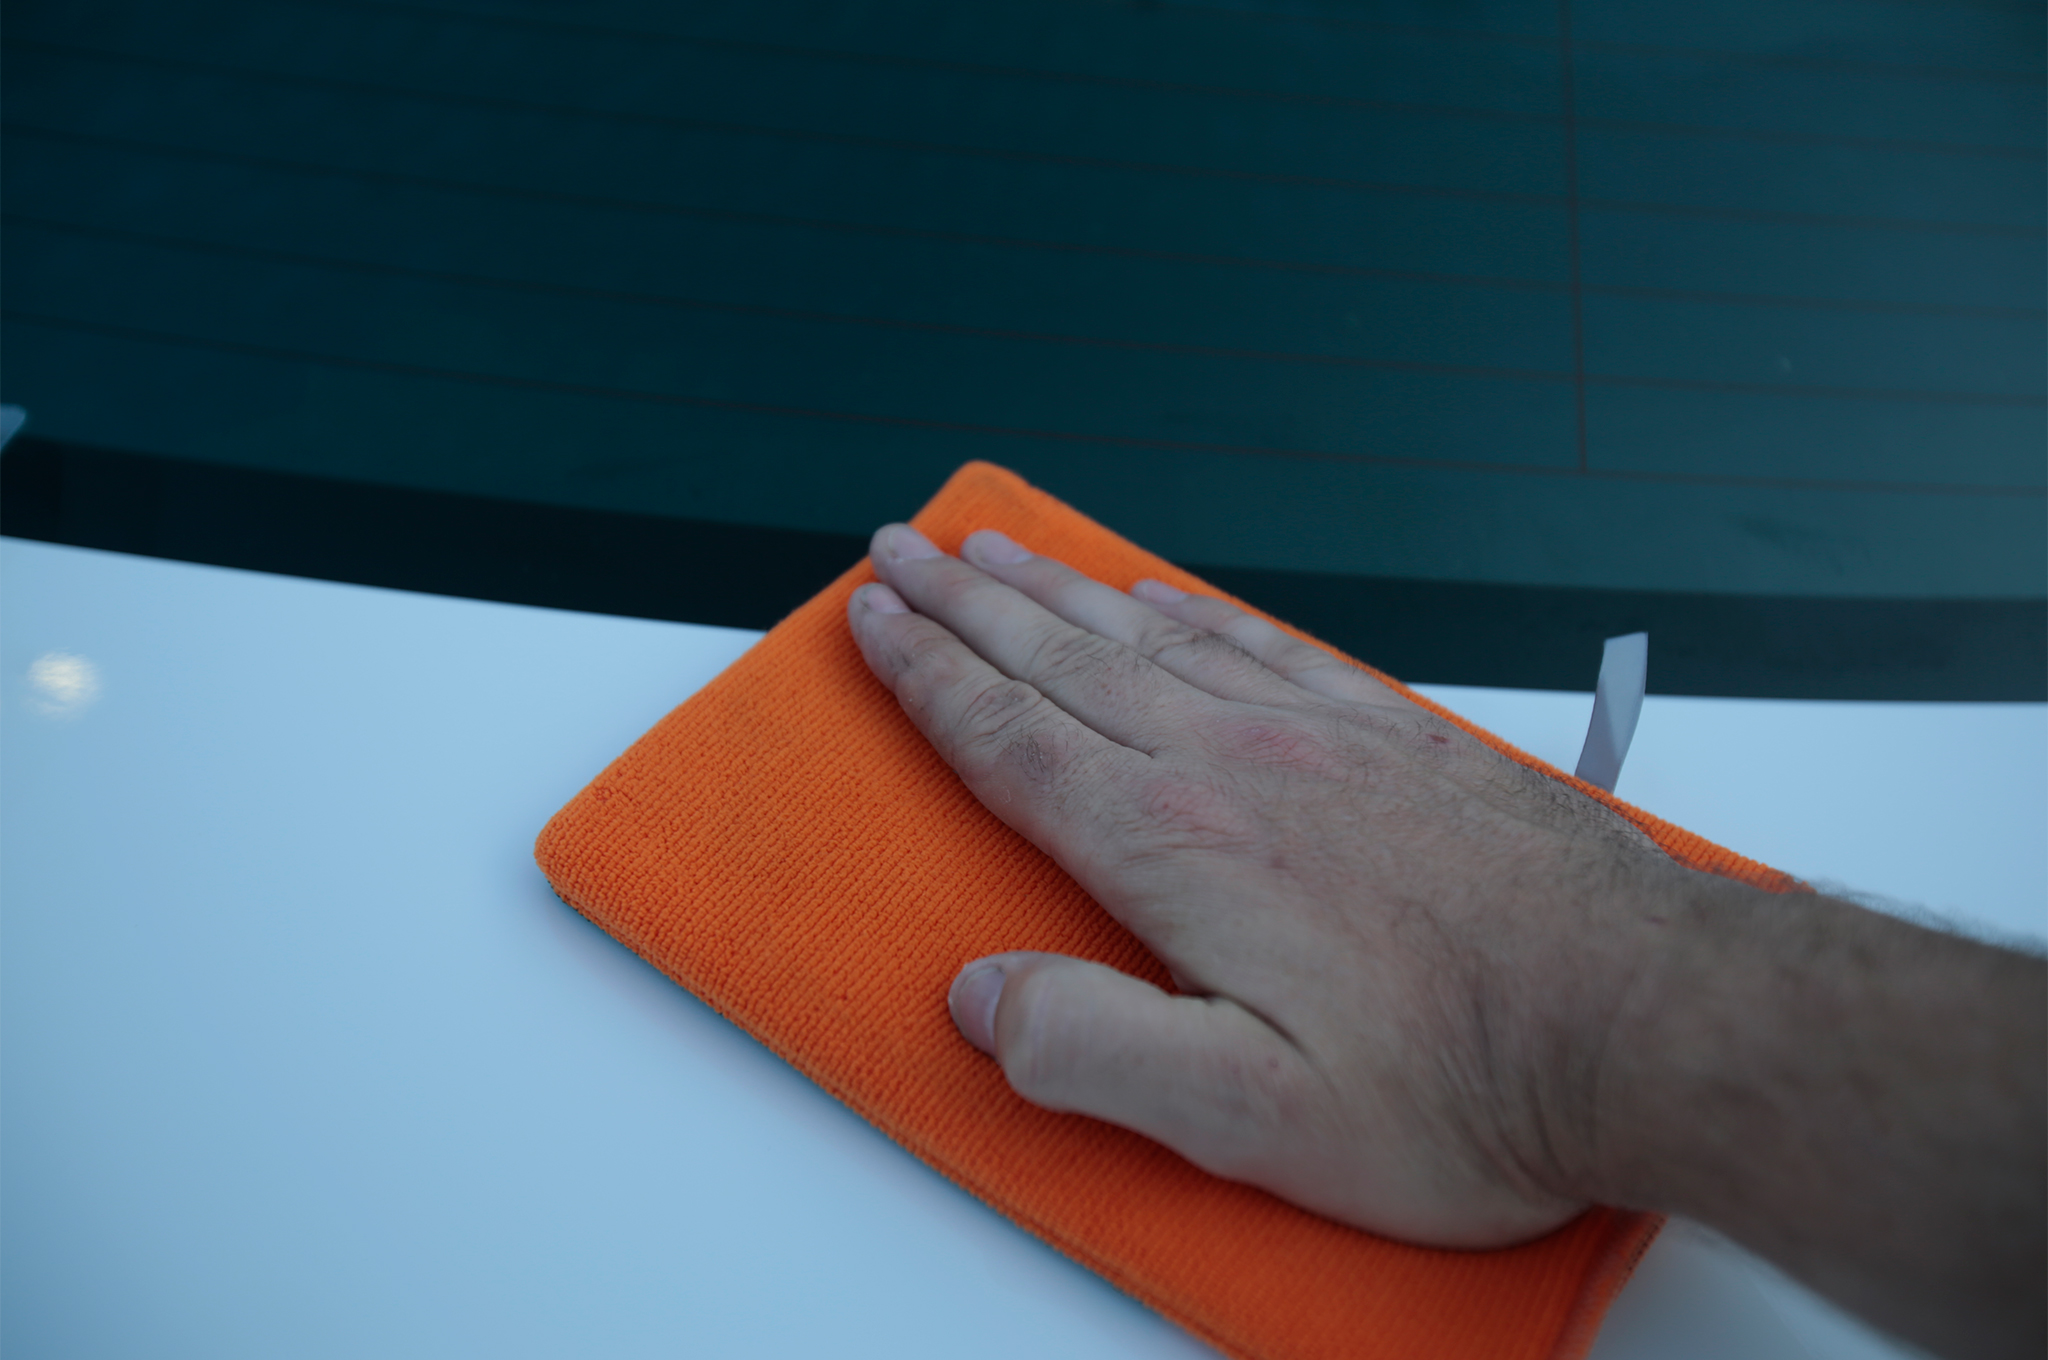 Just like a clay bar, use the mitt to polish the surface. We found that a light spray caused just a bit of drag, similar to the feel of a clay bar. Too much spray detailer and the mitt would just slide around without doing its job.